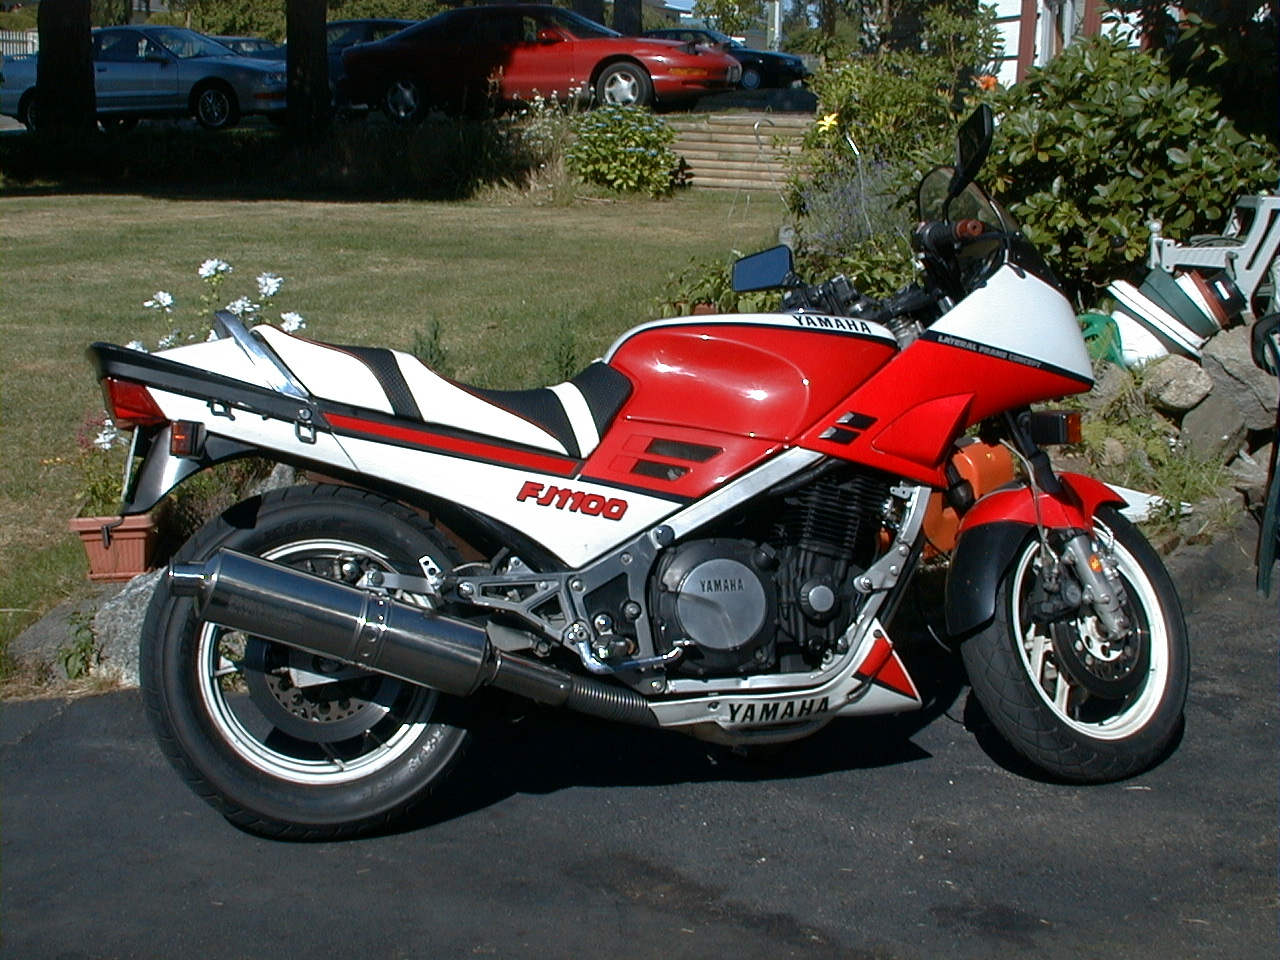 Yamaha XJ 600 (reduced effect) 1987 #7